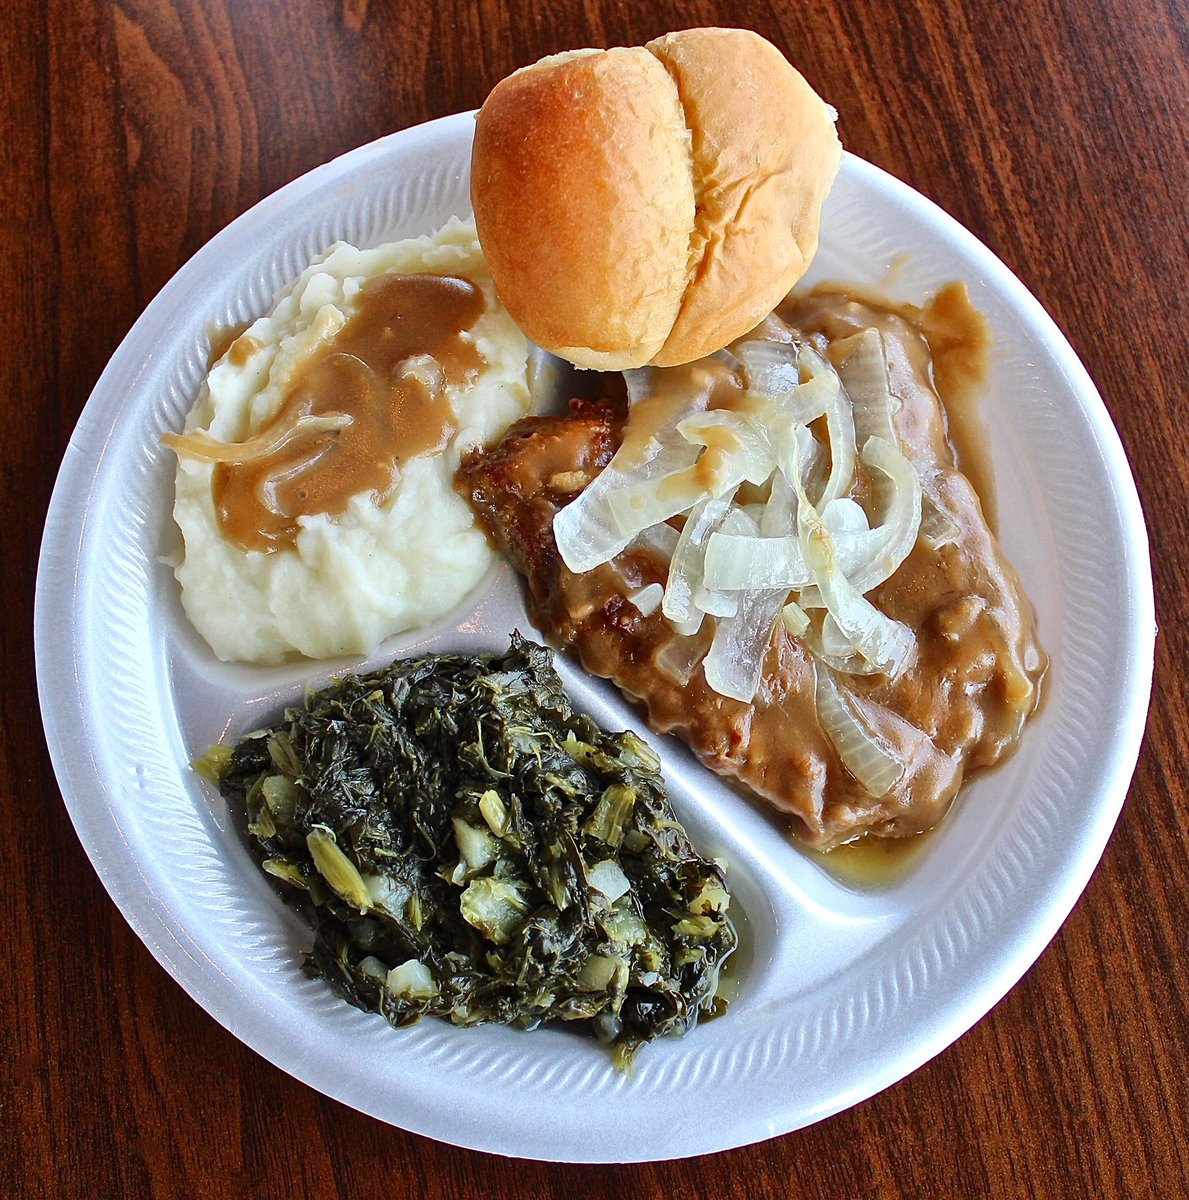 Join us for lunch or dinner today and try our smothered pork chops. Made with lots of love like our made-from-scratch mashed potatoes and turnip greens!! 🤗 #WednesdaySpecial #BishopsMeat3